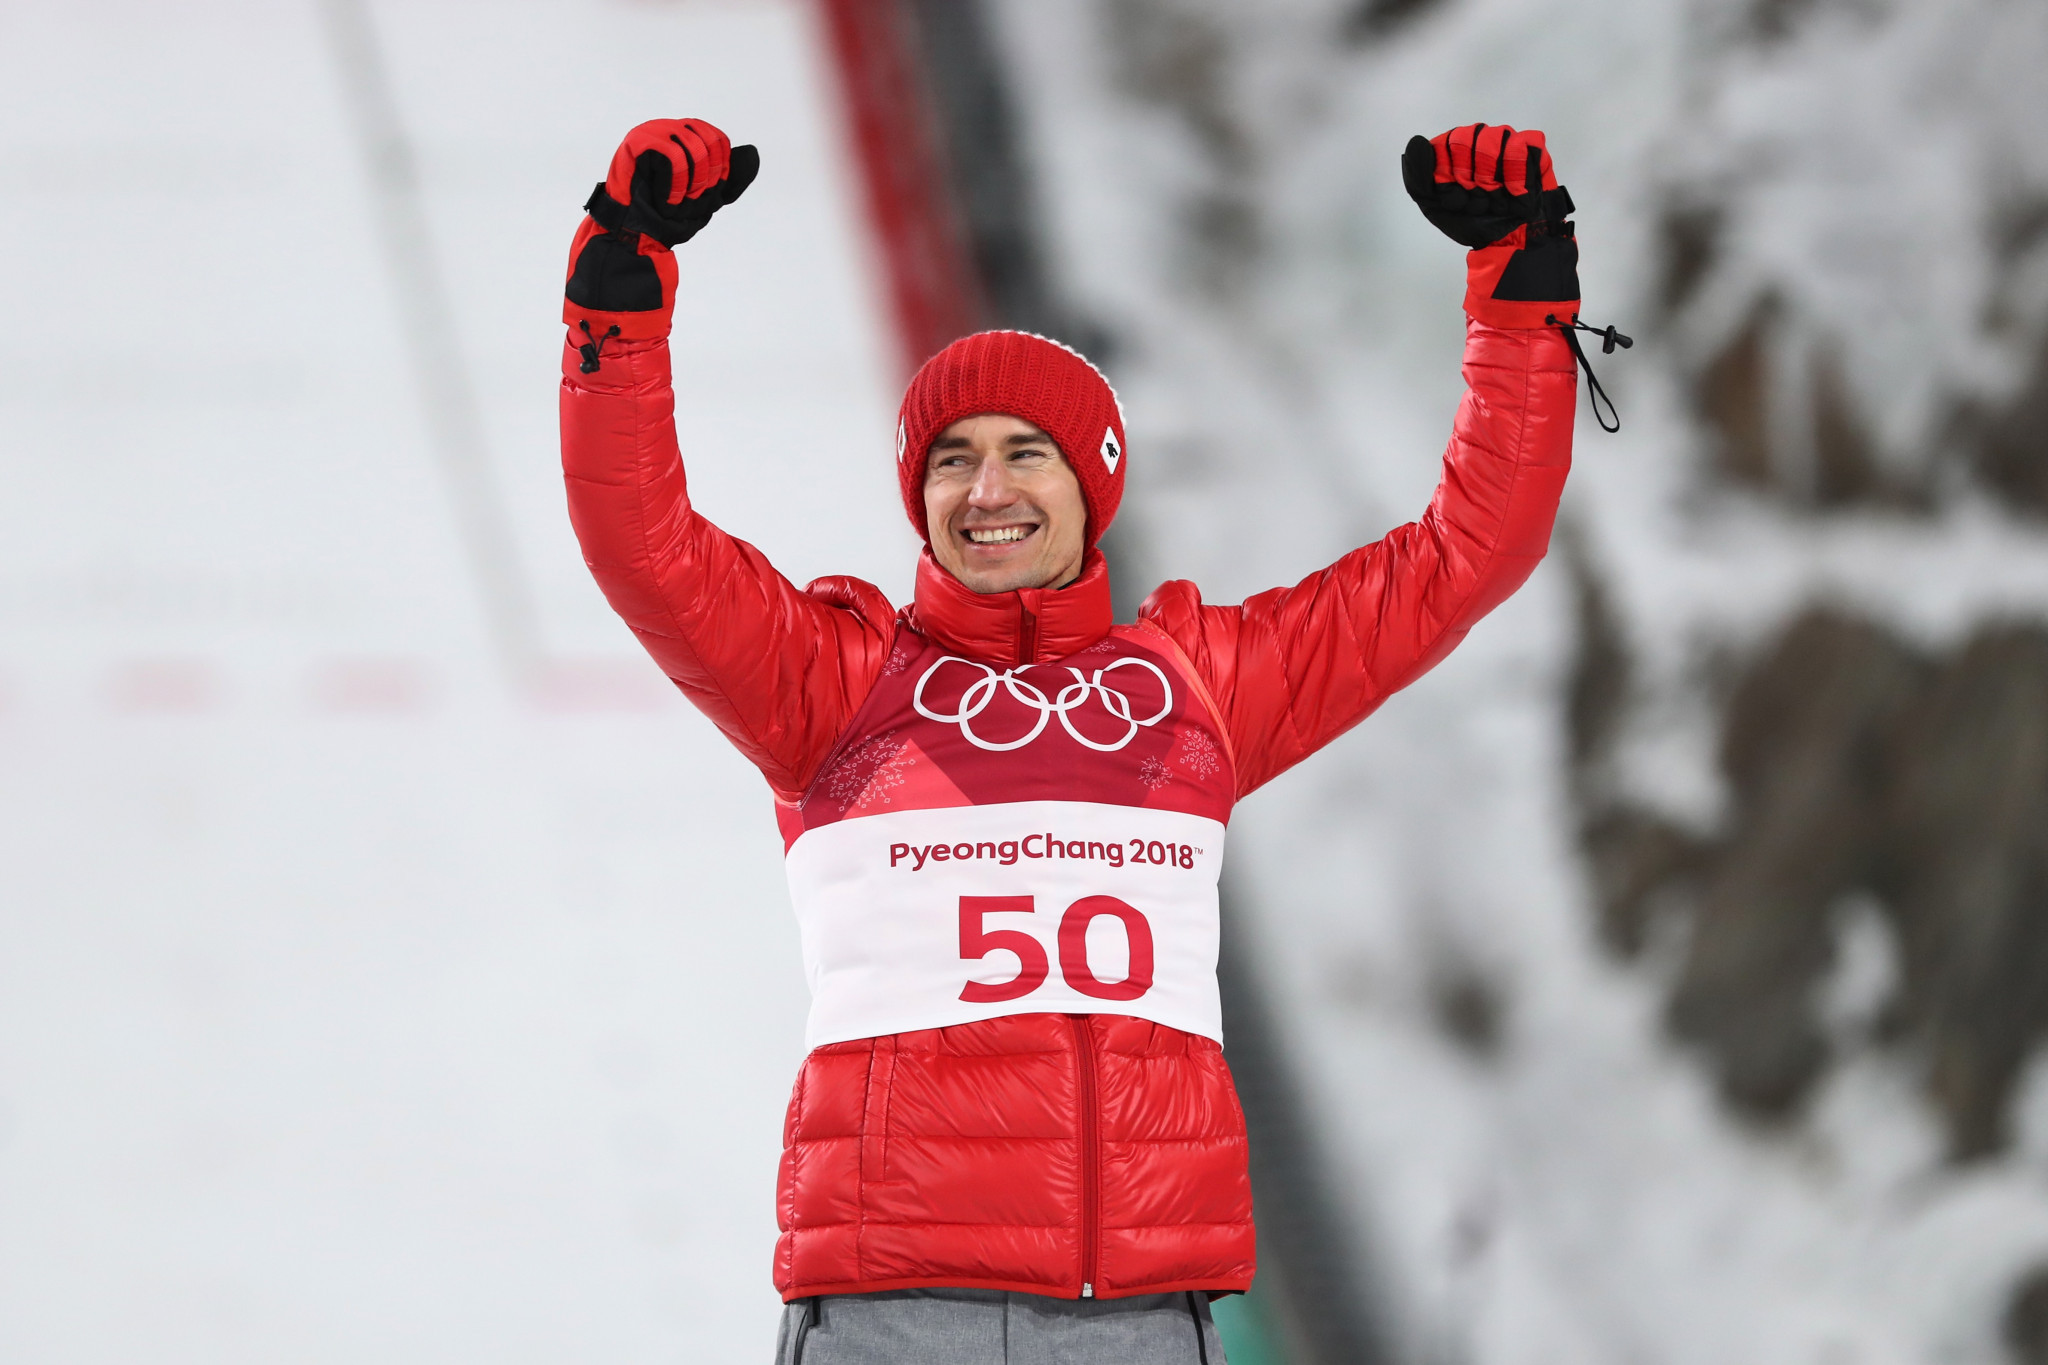 Polish ski jumper Kamil Stoch successfully defended his Olympic men's large hill individual title today with an assured display at Pyeongchang 2018 ©Getty Images